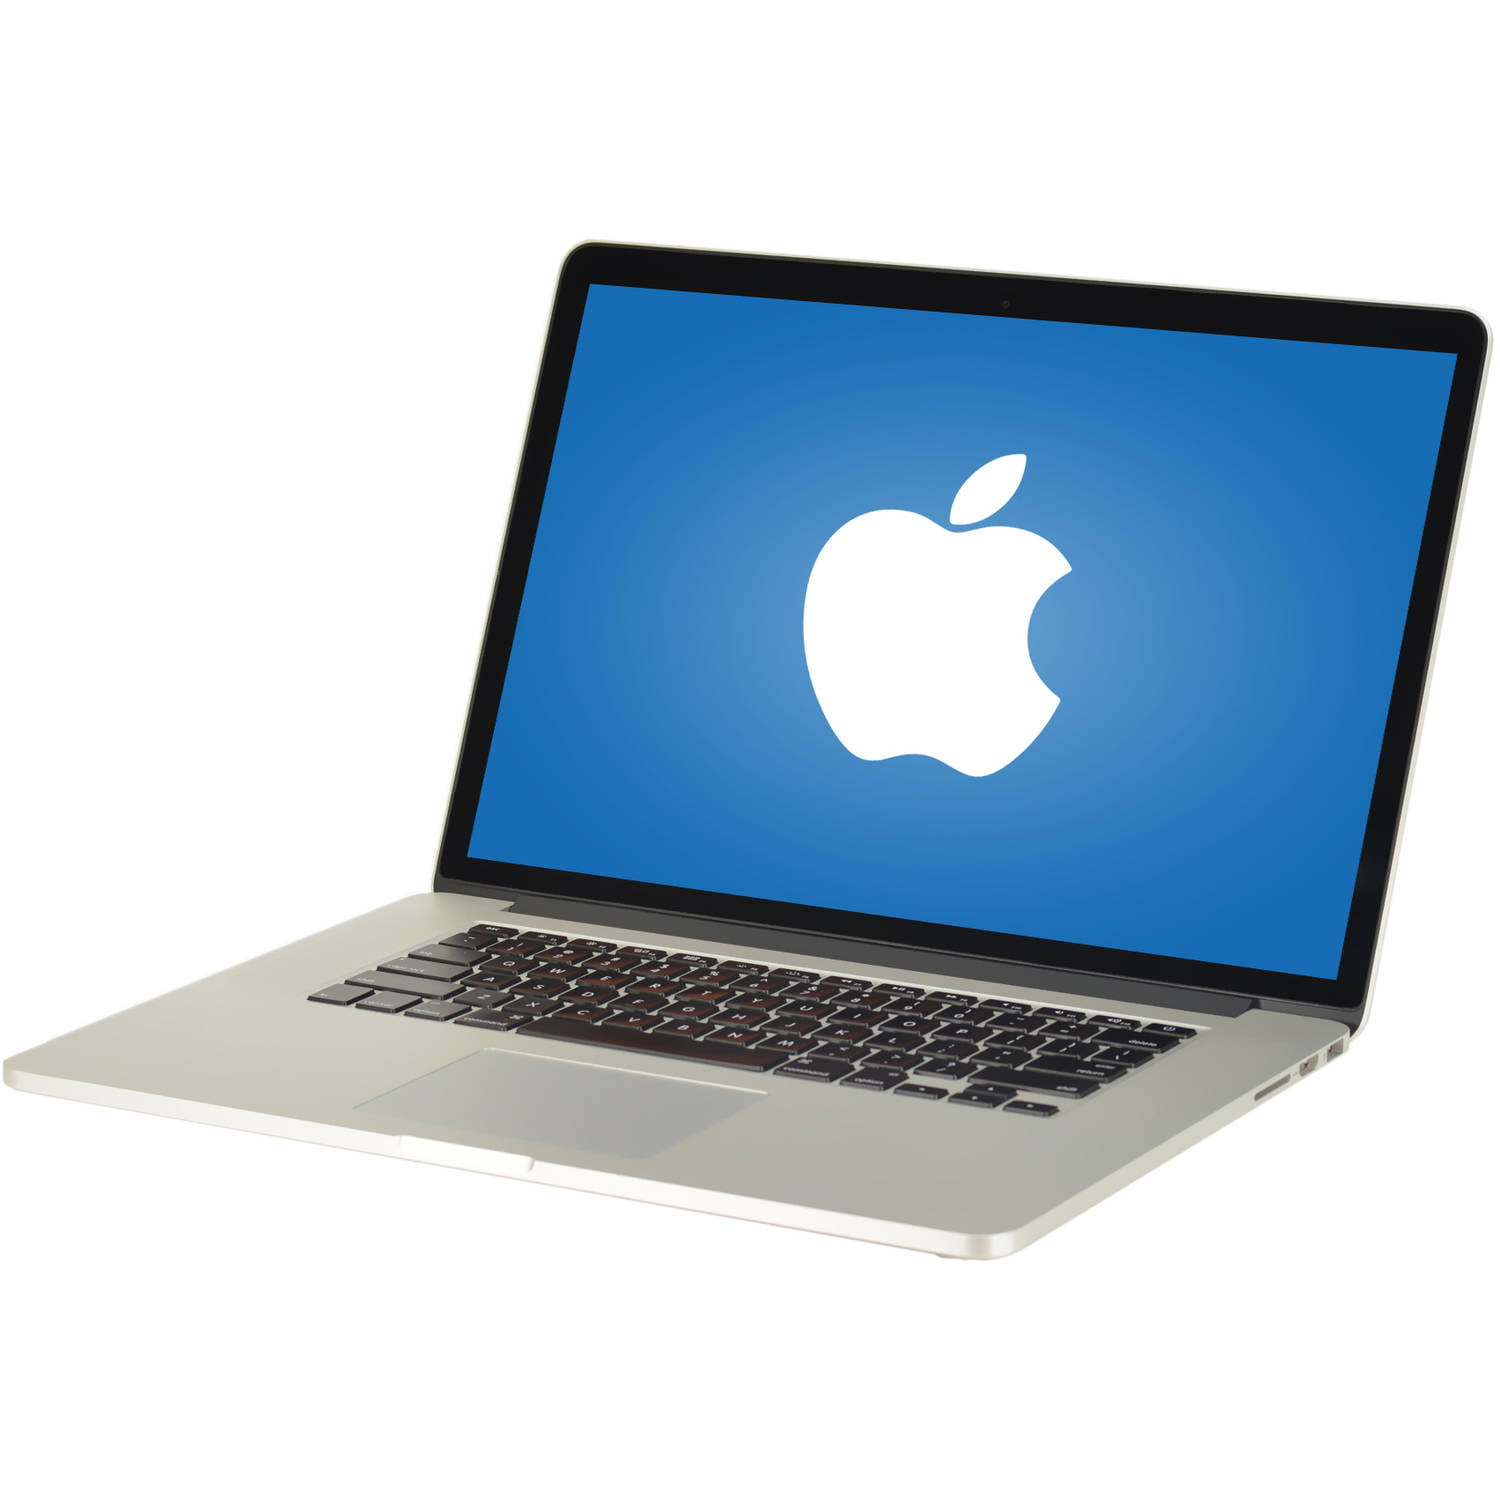 "Refurbished Apple A1398 MC975LL A 15.4"" MacBook Pro, Mac OS X 10.11 El Capitan, Intel Core i7-3615QM Processor,... by Apple"